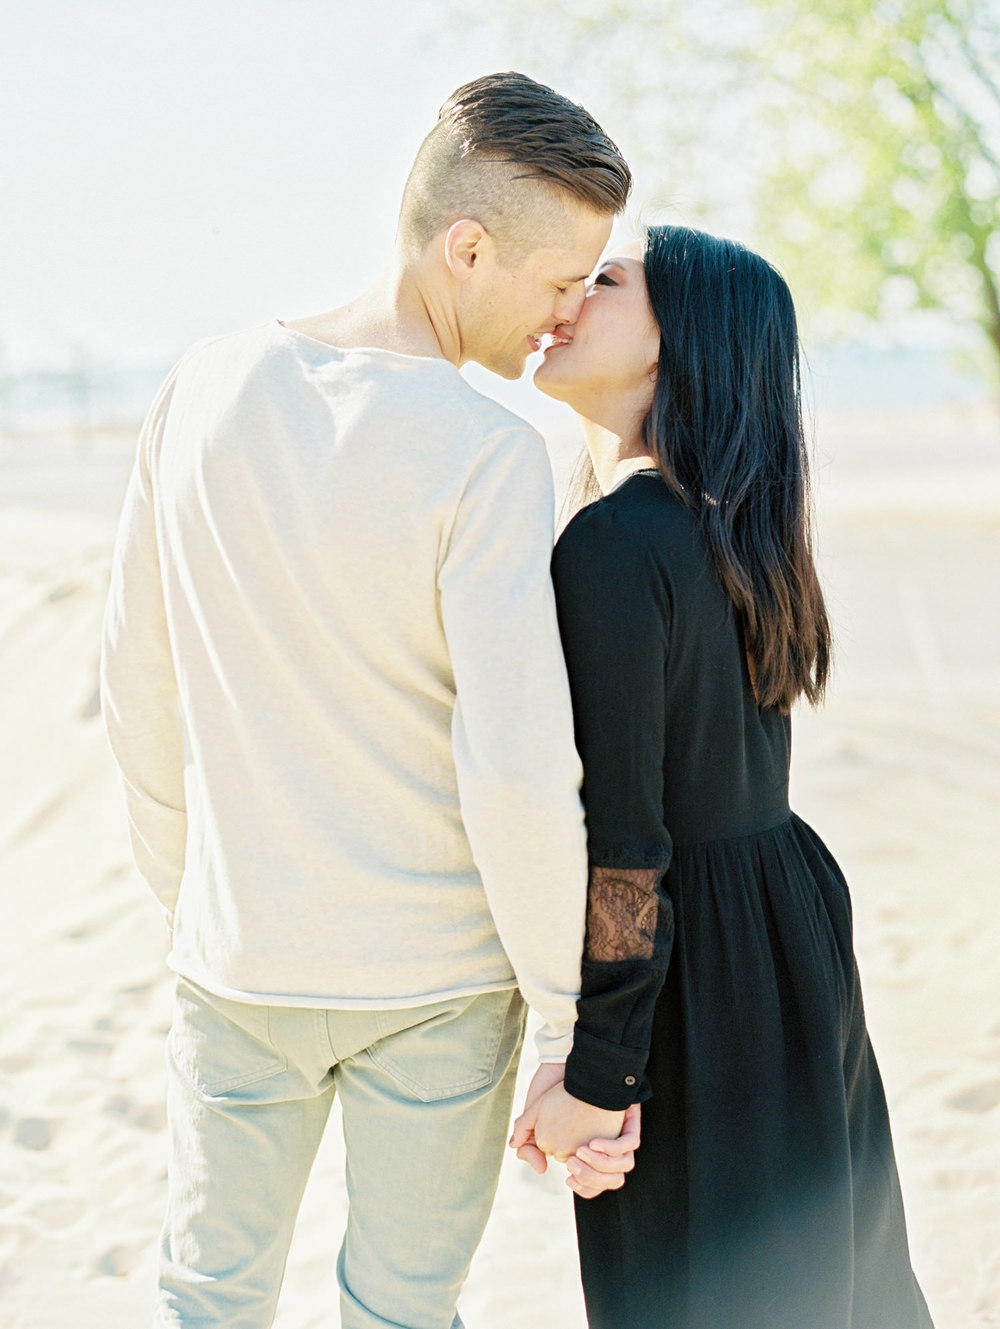 009-chicago-engagement-session.jpg